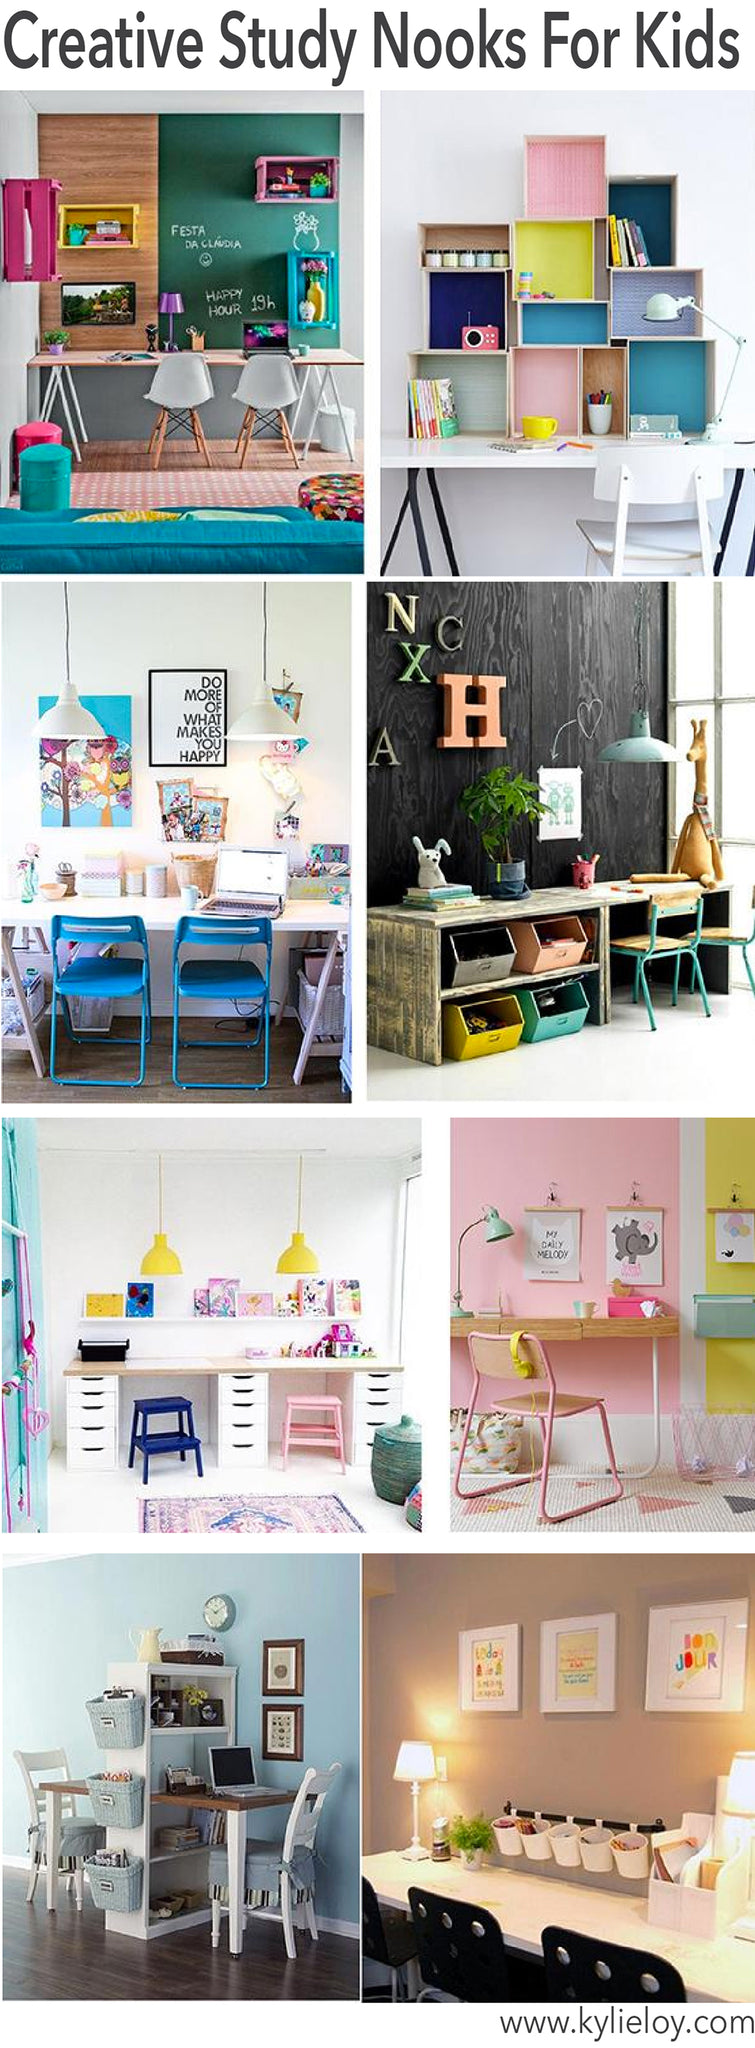 creative Study nooks for kids